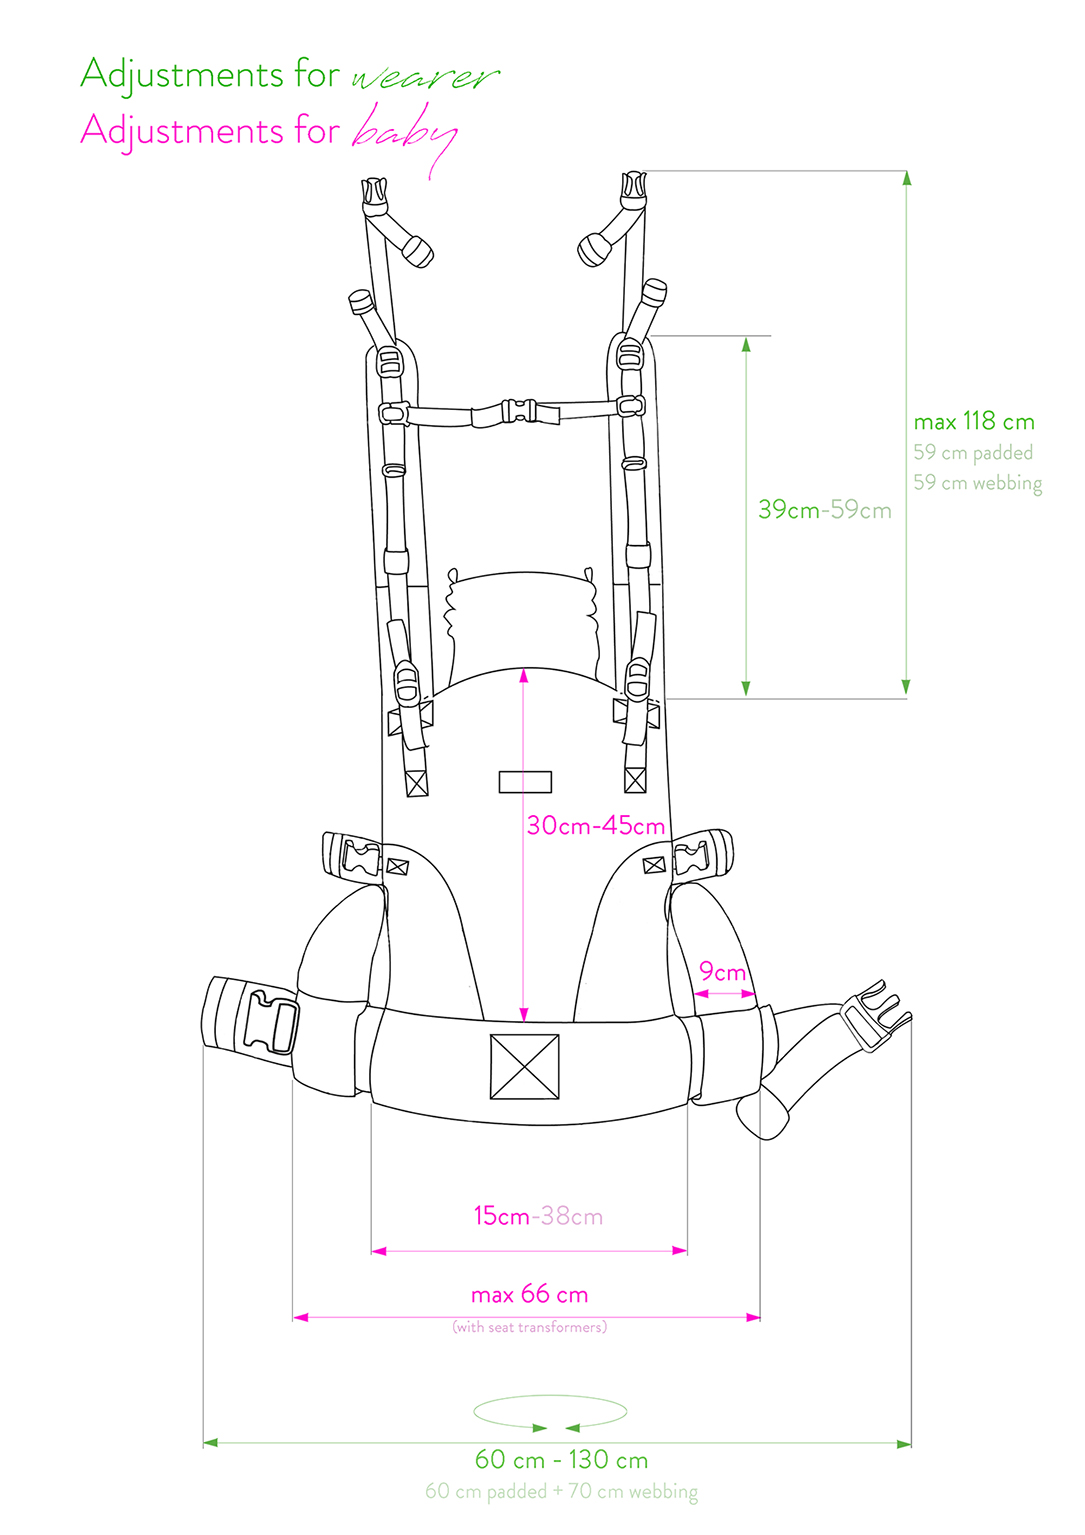 hight resolution of for newborns starting with 3 kg 6 6 lbs the seat transformers can be easily detached to provide the ultimate adjustability ranging between 15 cm 6